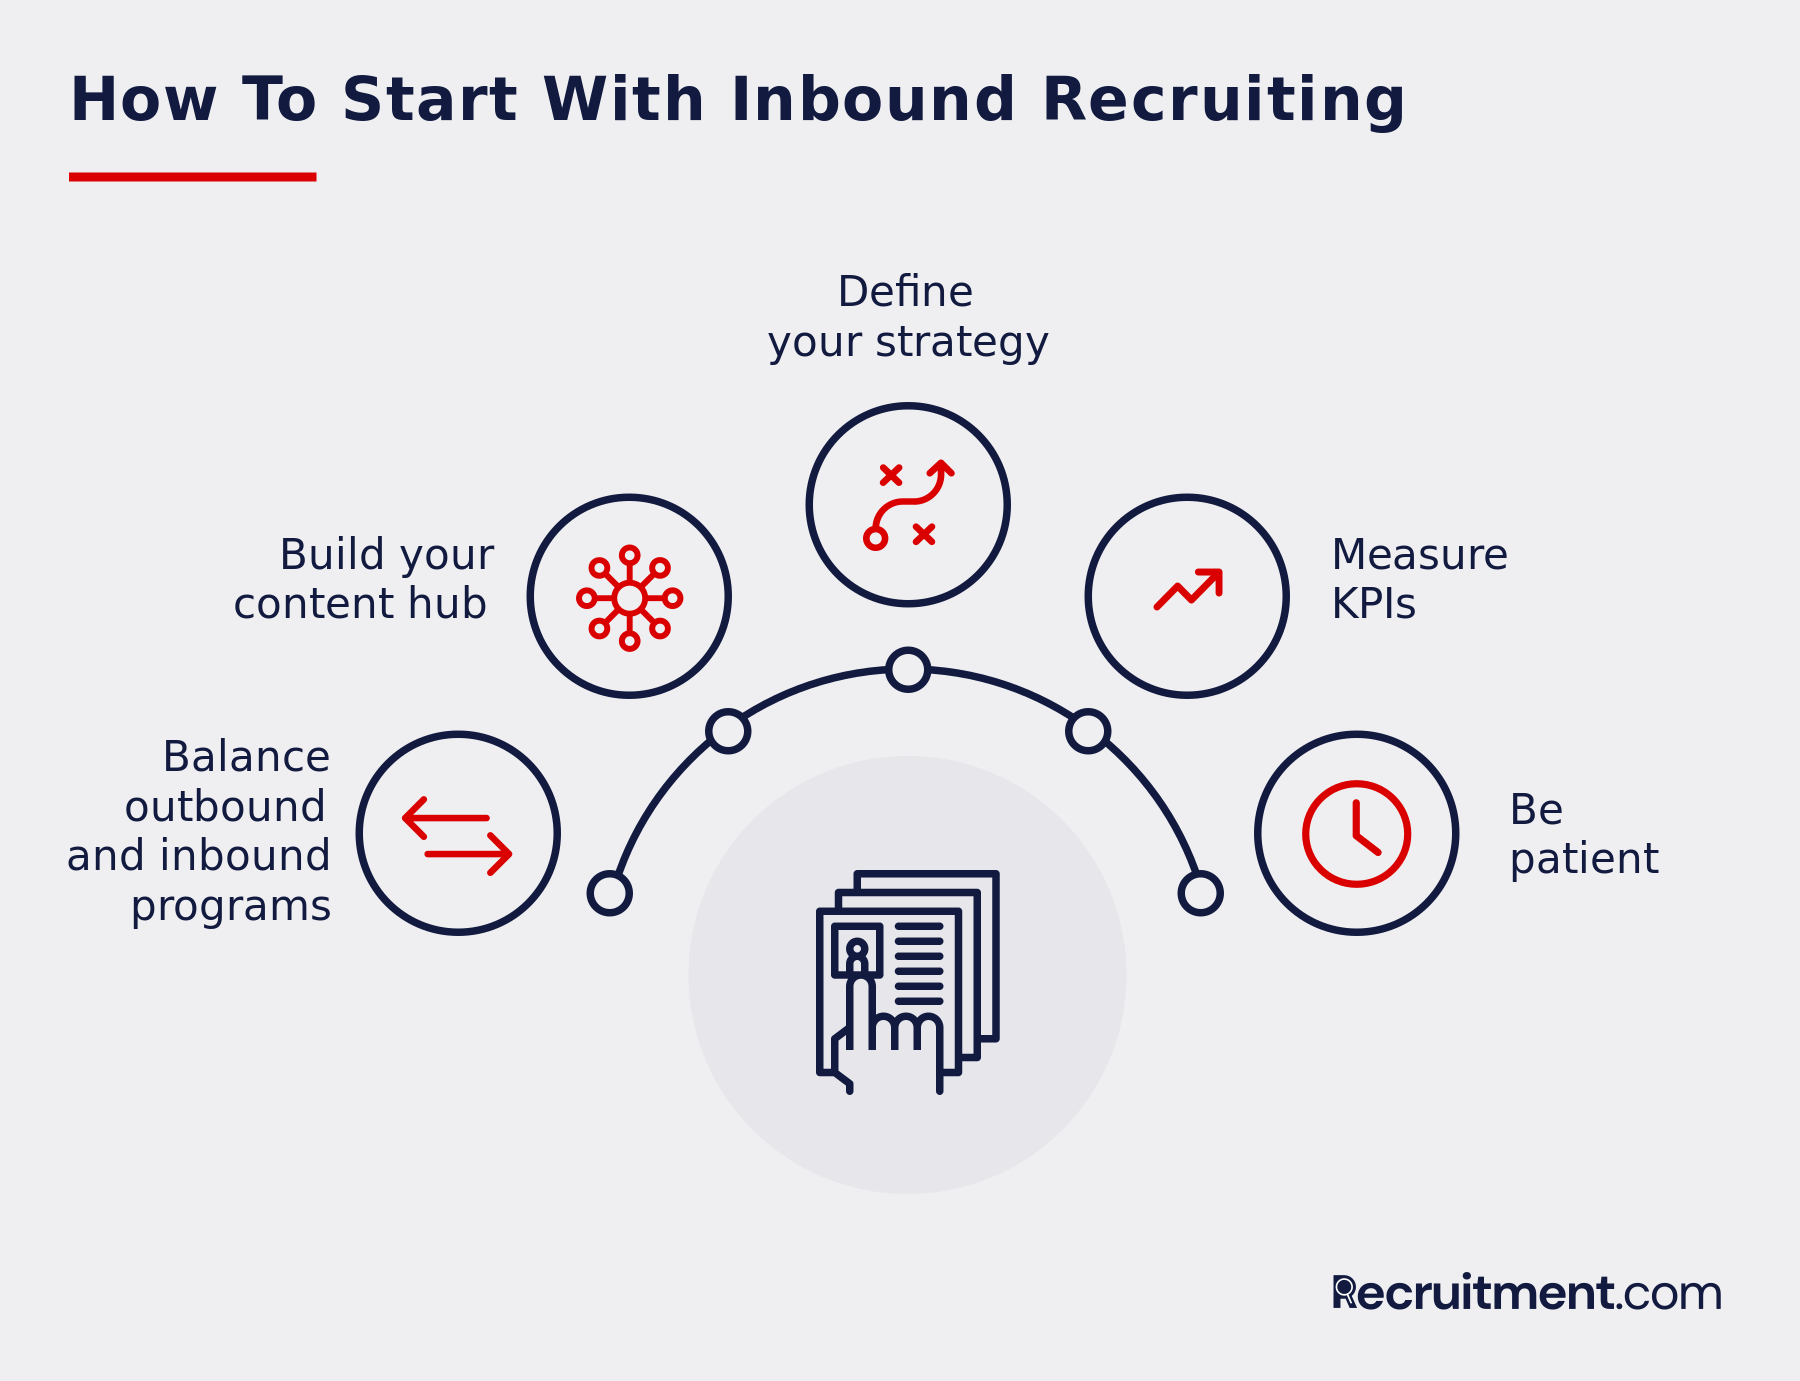 How to start with inbound recruiting